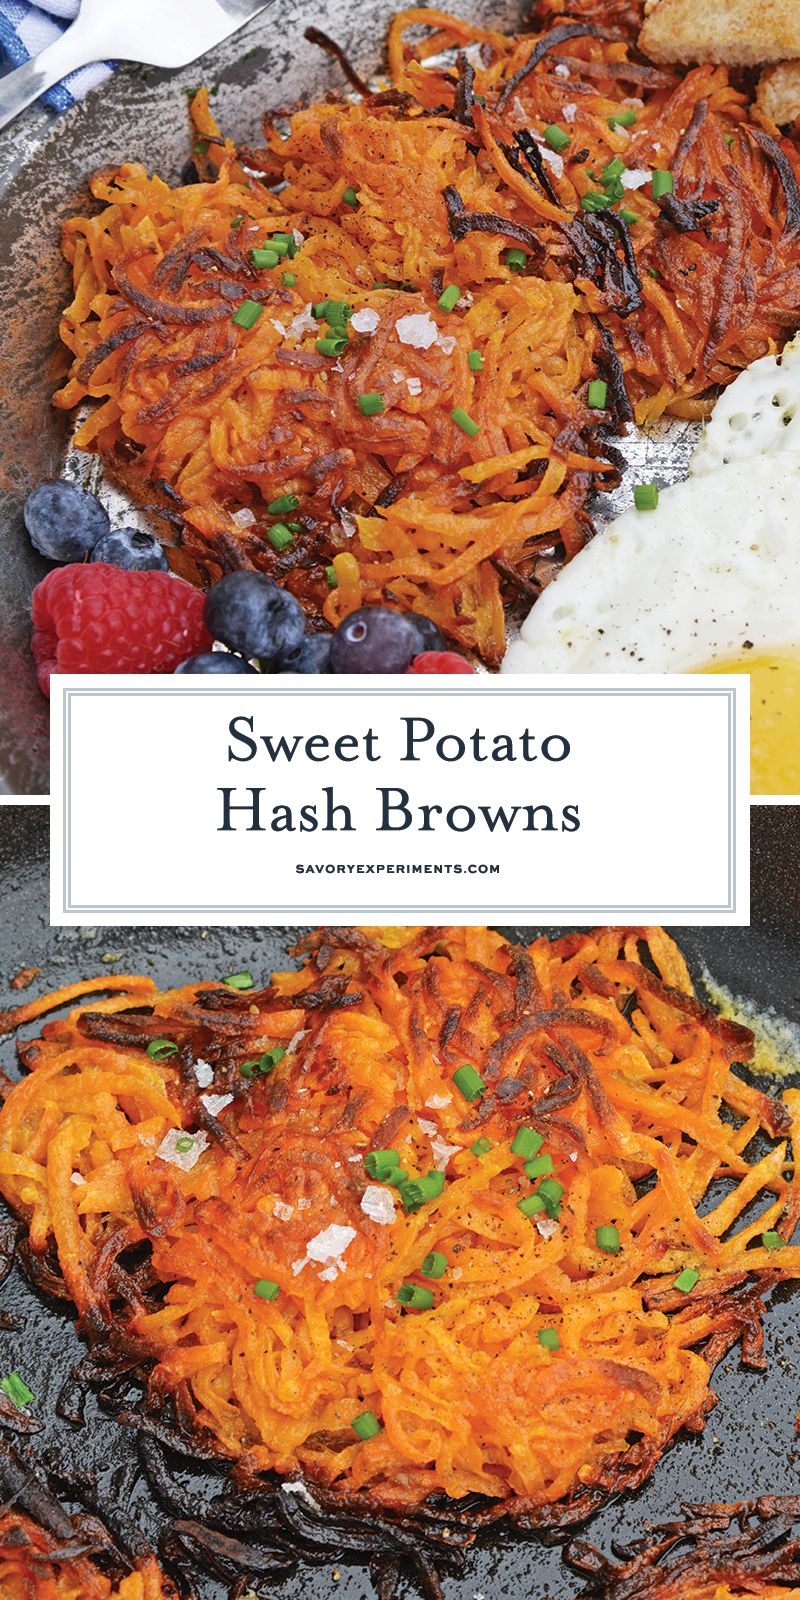 Sweet Potato Hash Browns are a simple breakfast recipe